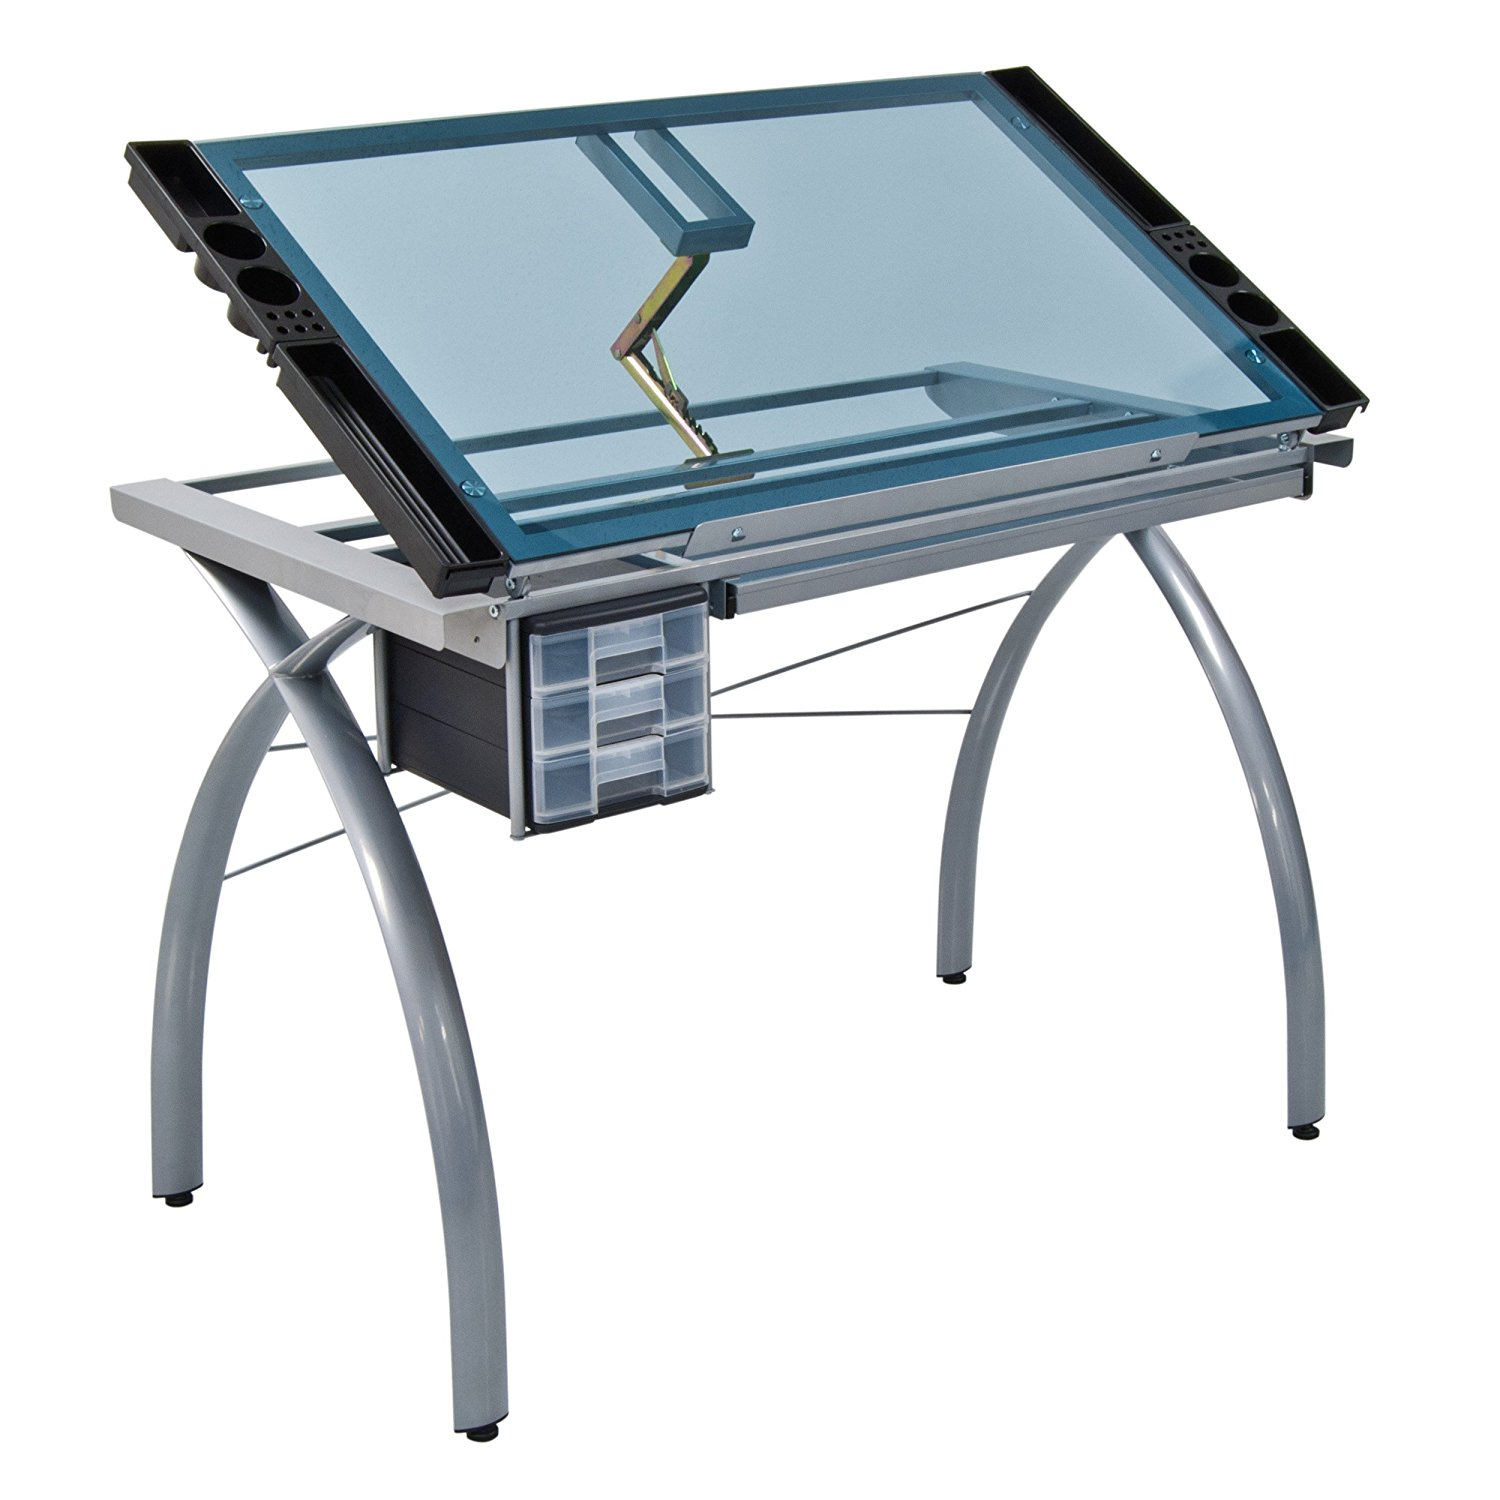 Top 10 Best Drafting Tables in 2021 Reviews